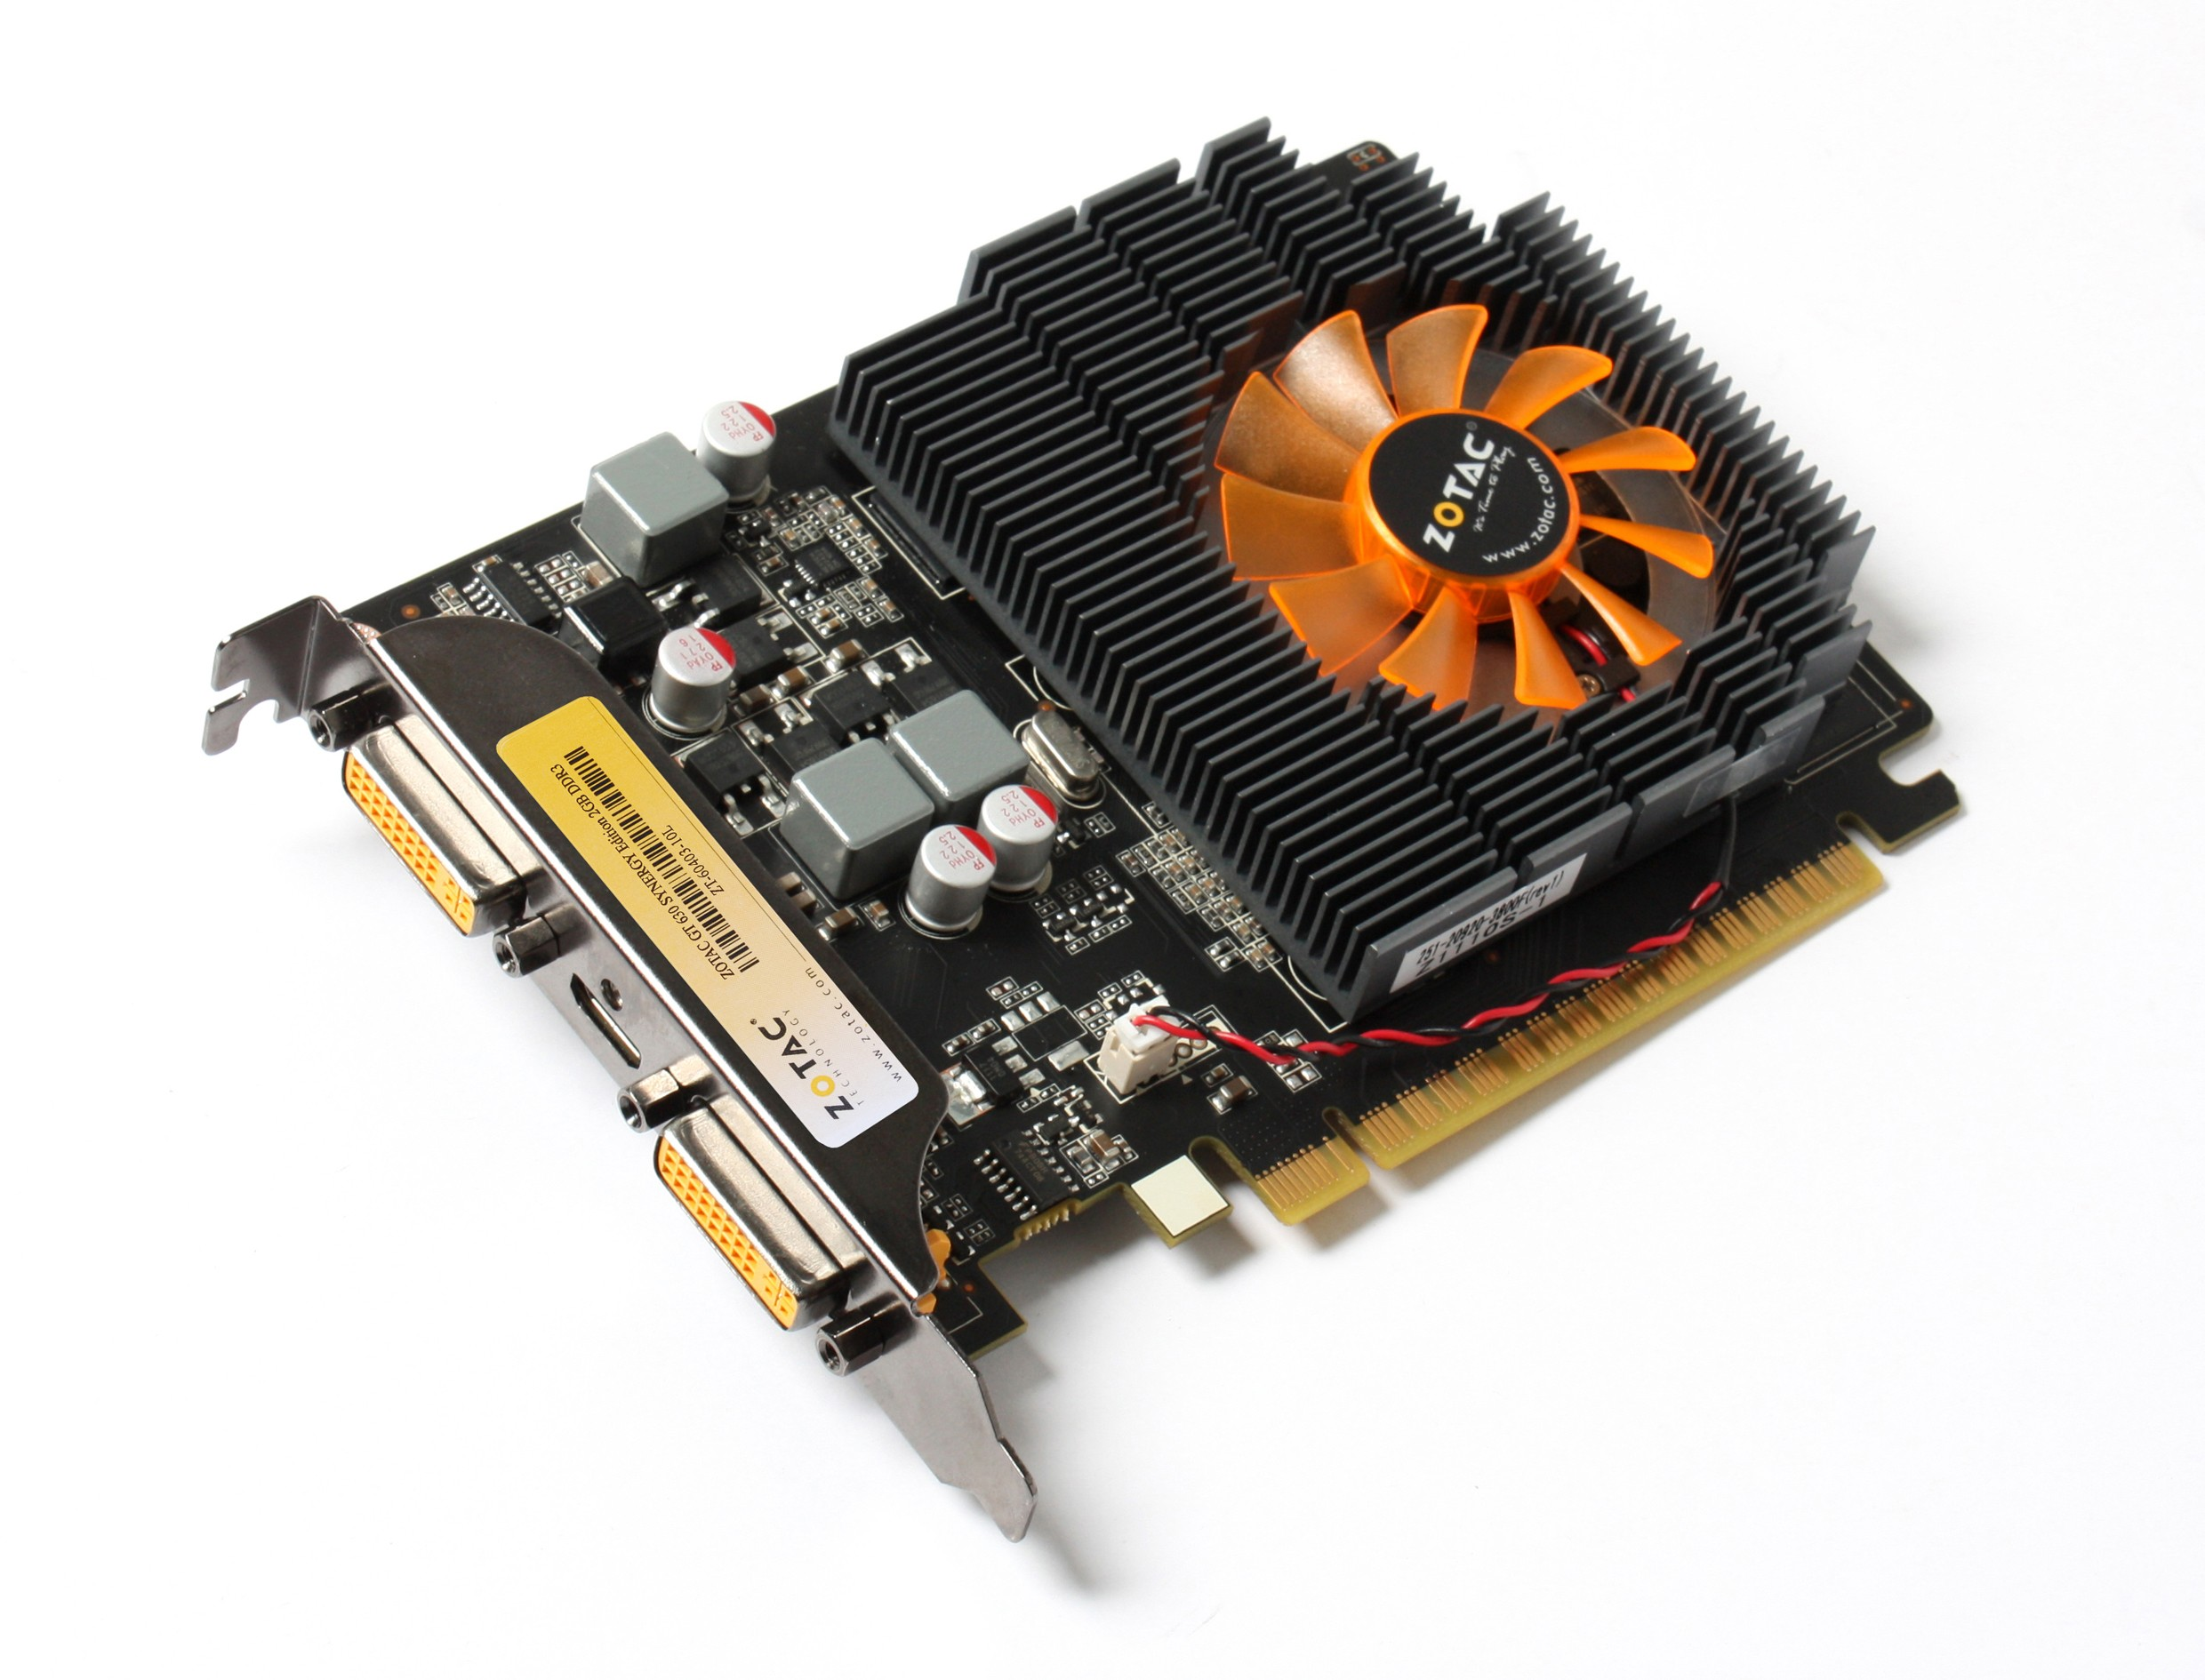 ZOTAC GT630 2GD3 (NVIDIA  GEFORCE GT630 2GB DDR3 128BIT)